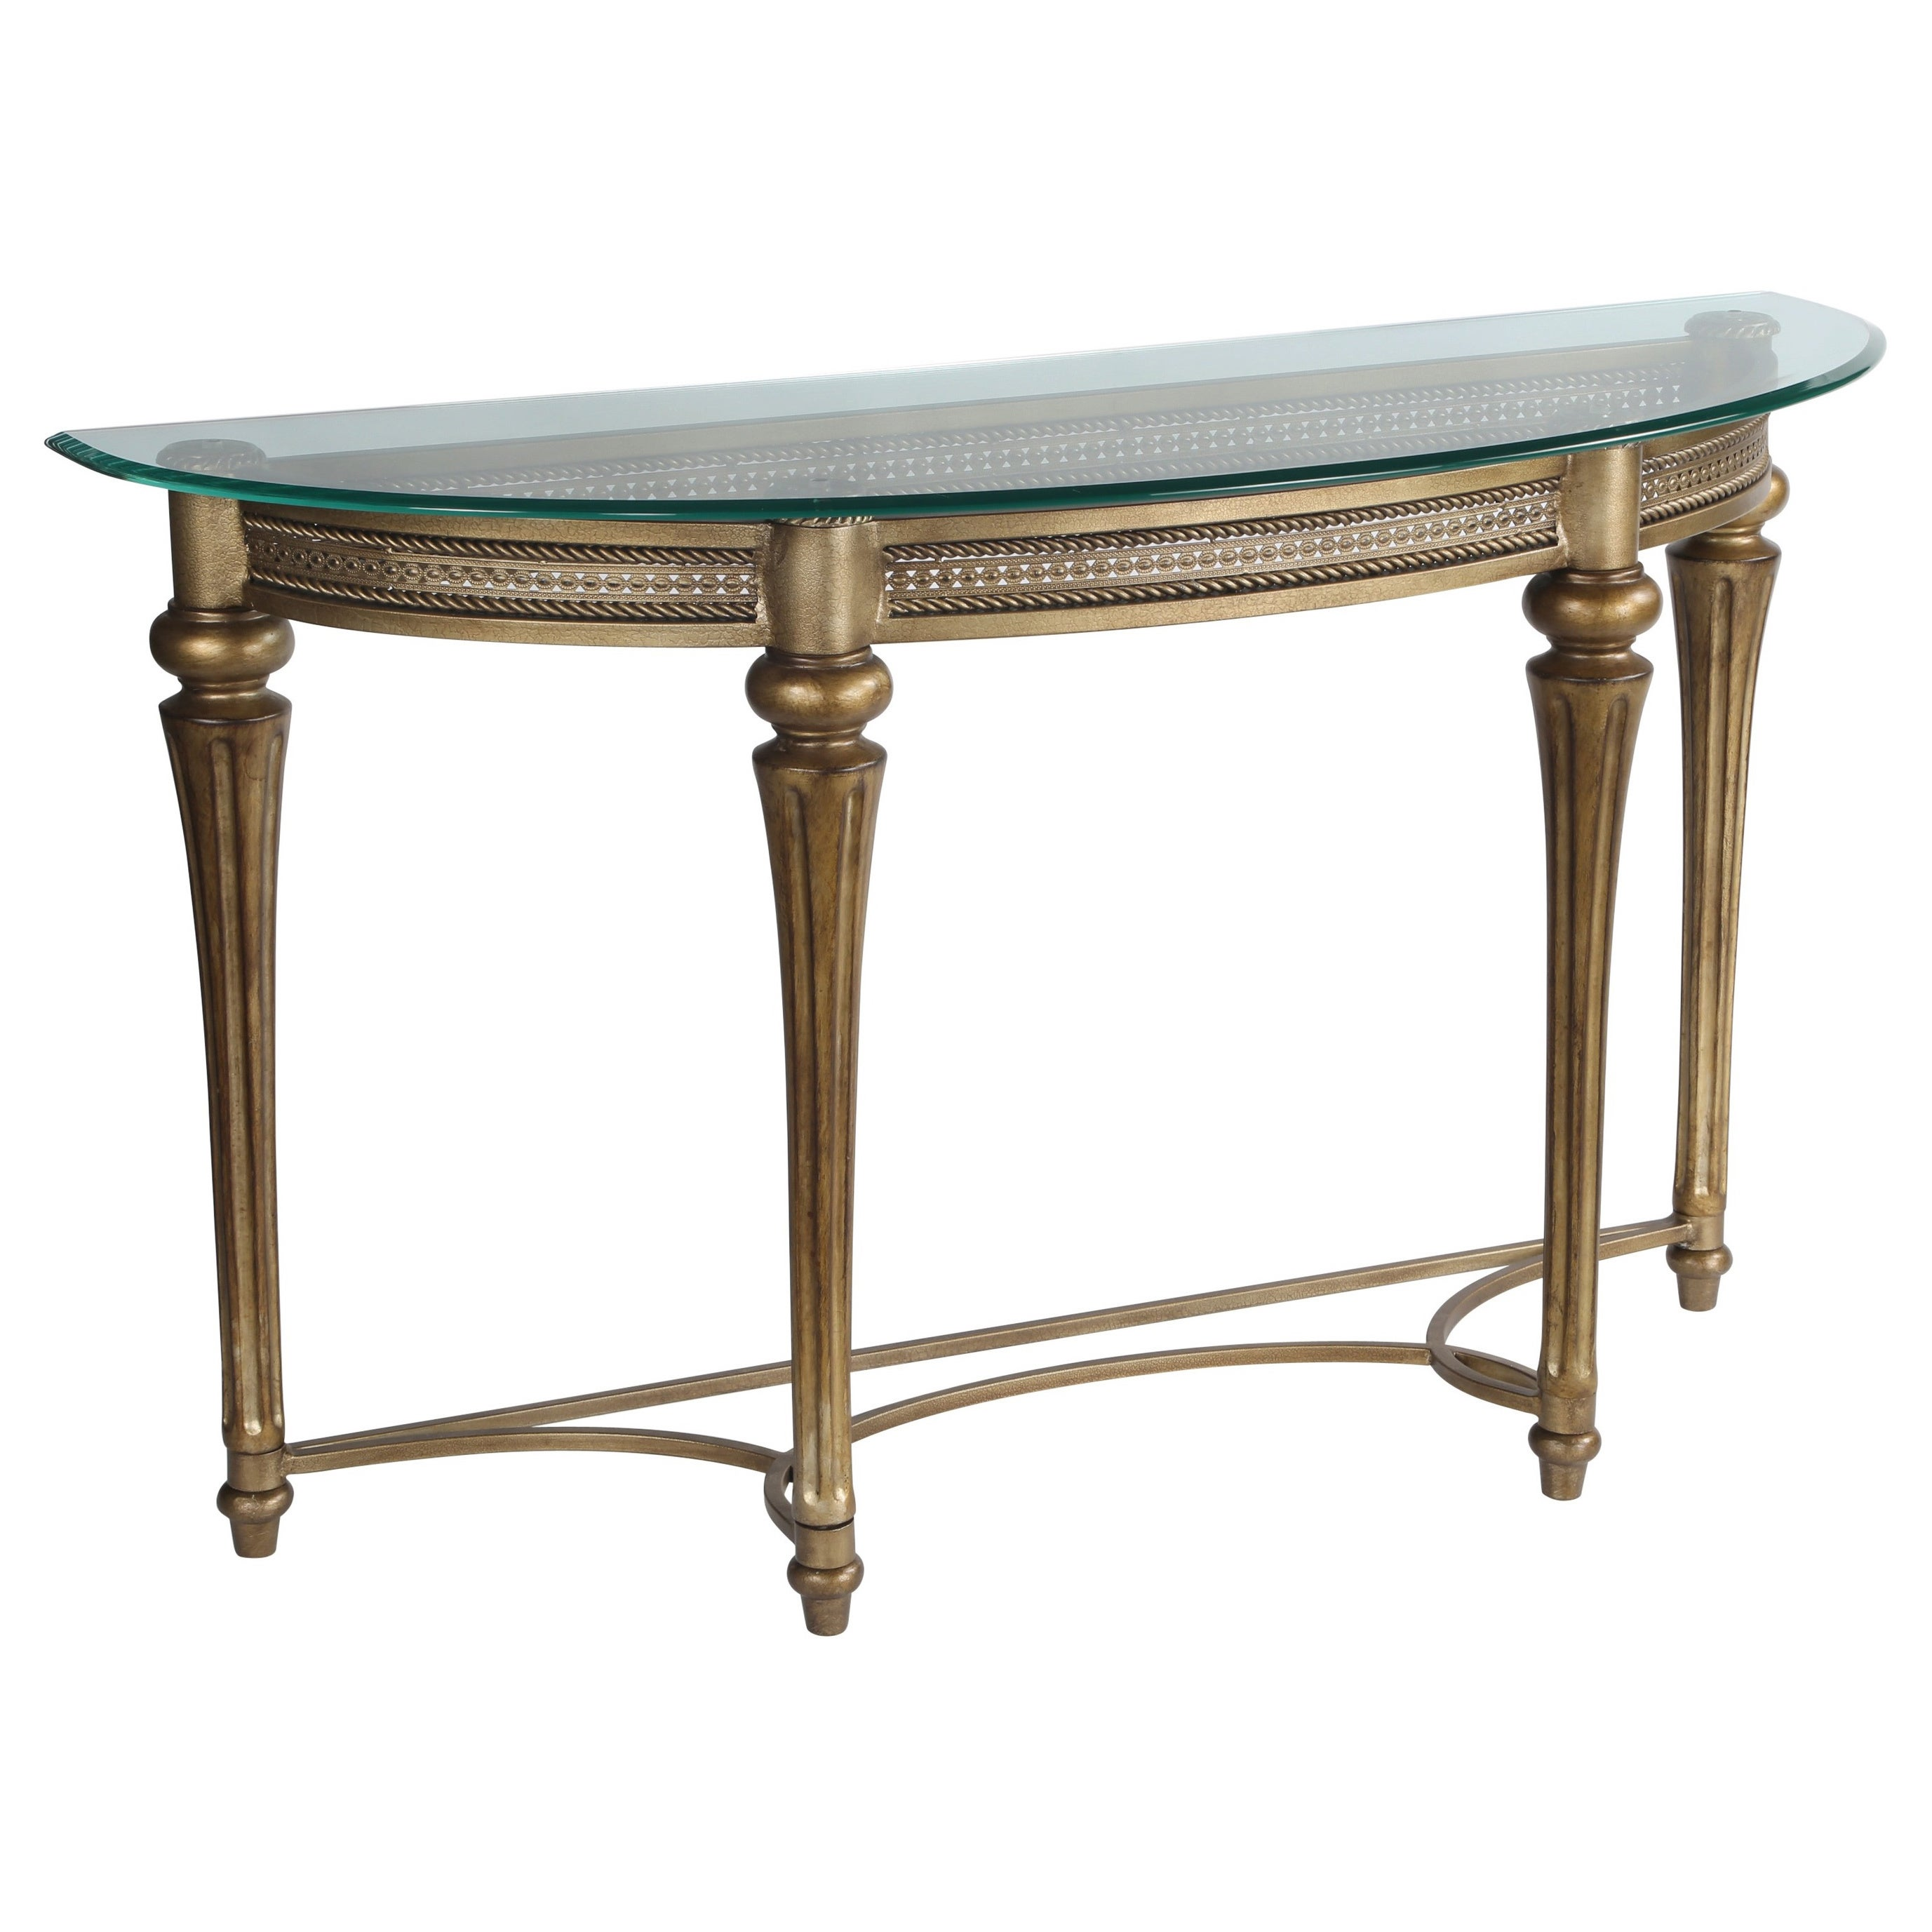 Shop Gracewood Hollow Arthur Traditional Wrought Iron Glass Top